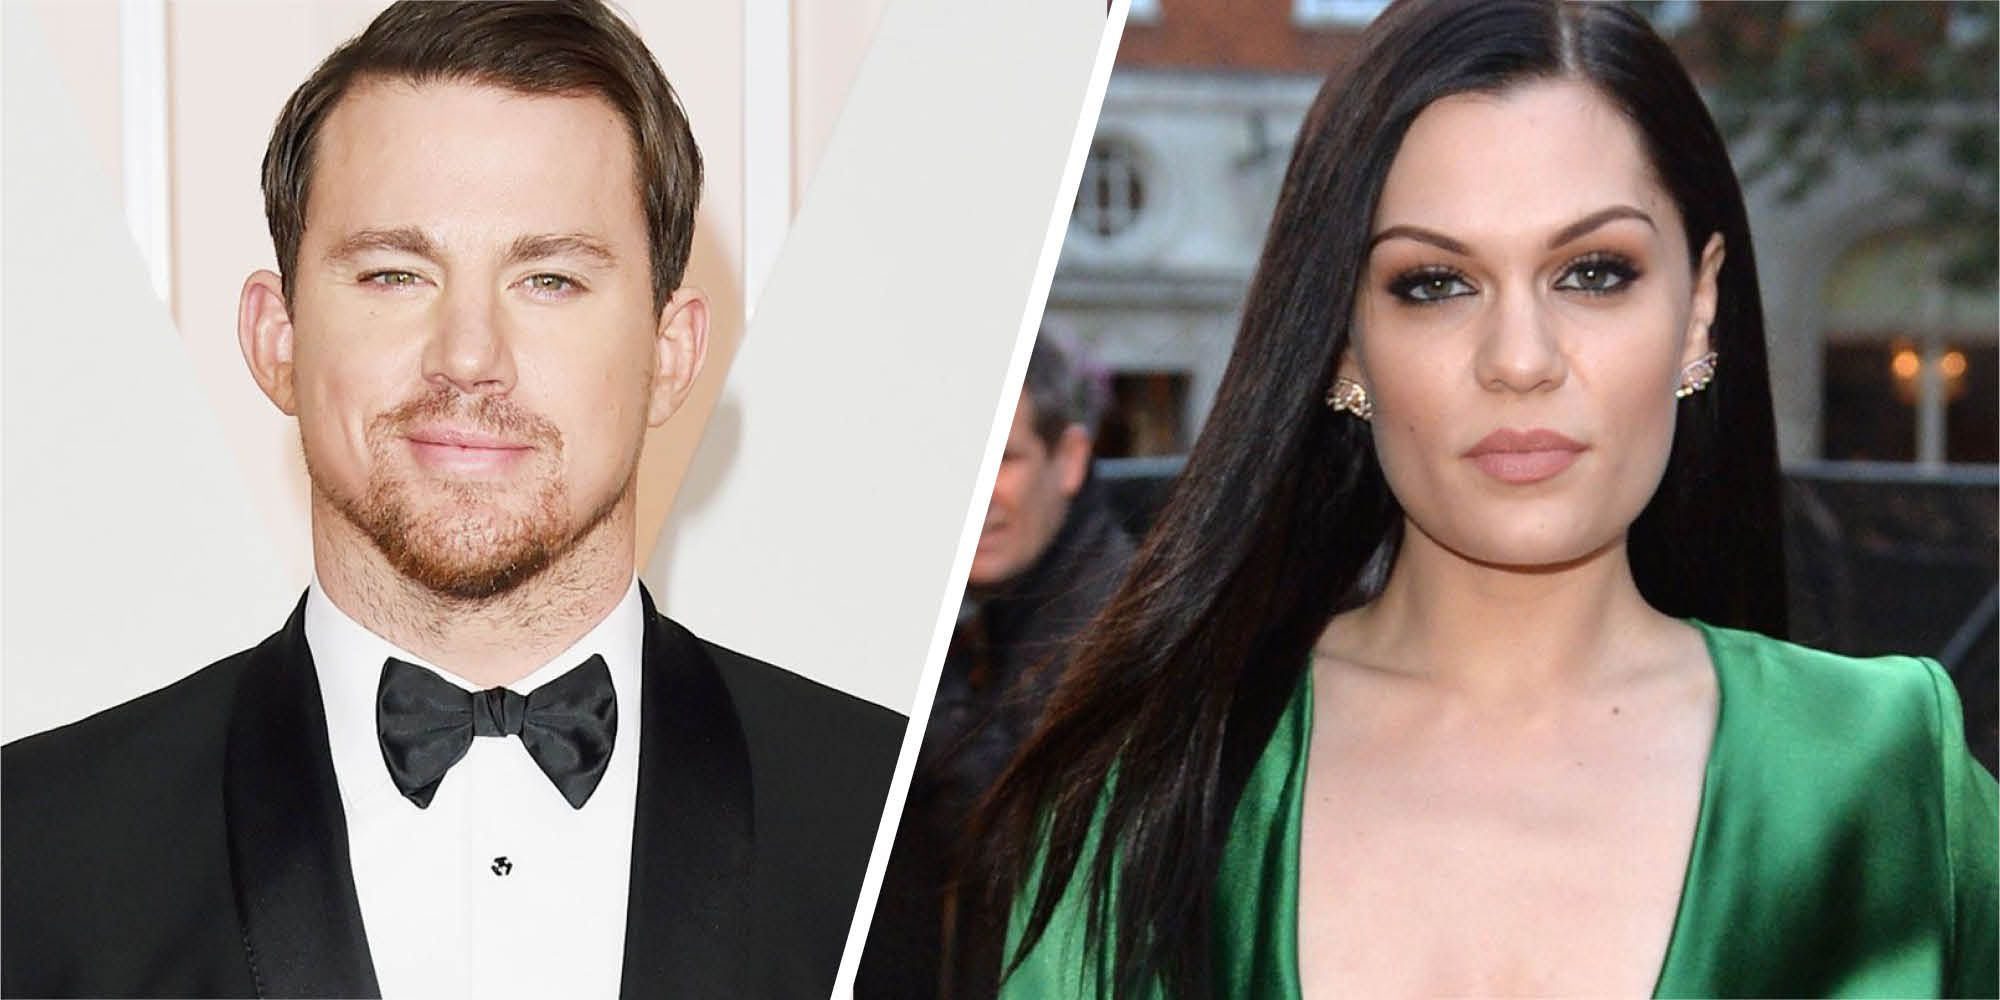 channing-tatum-celebrates-jessie-j-on-her-birthday-with-sweet-post